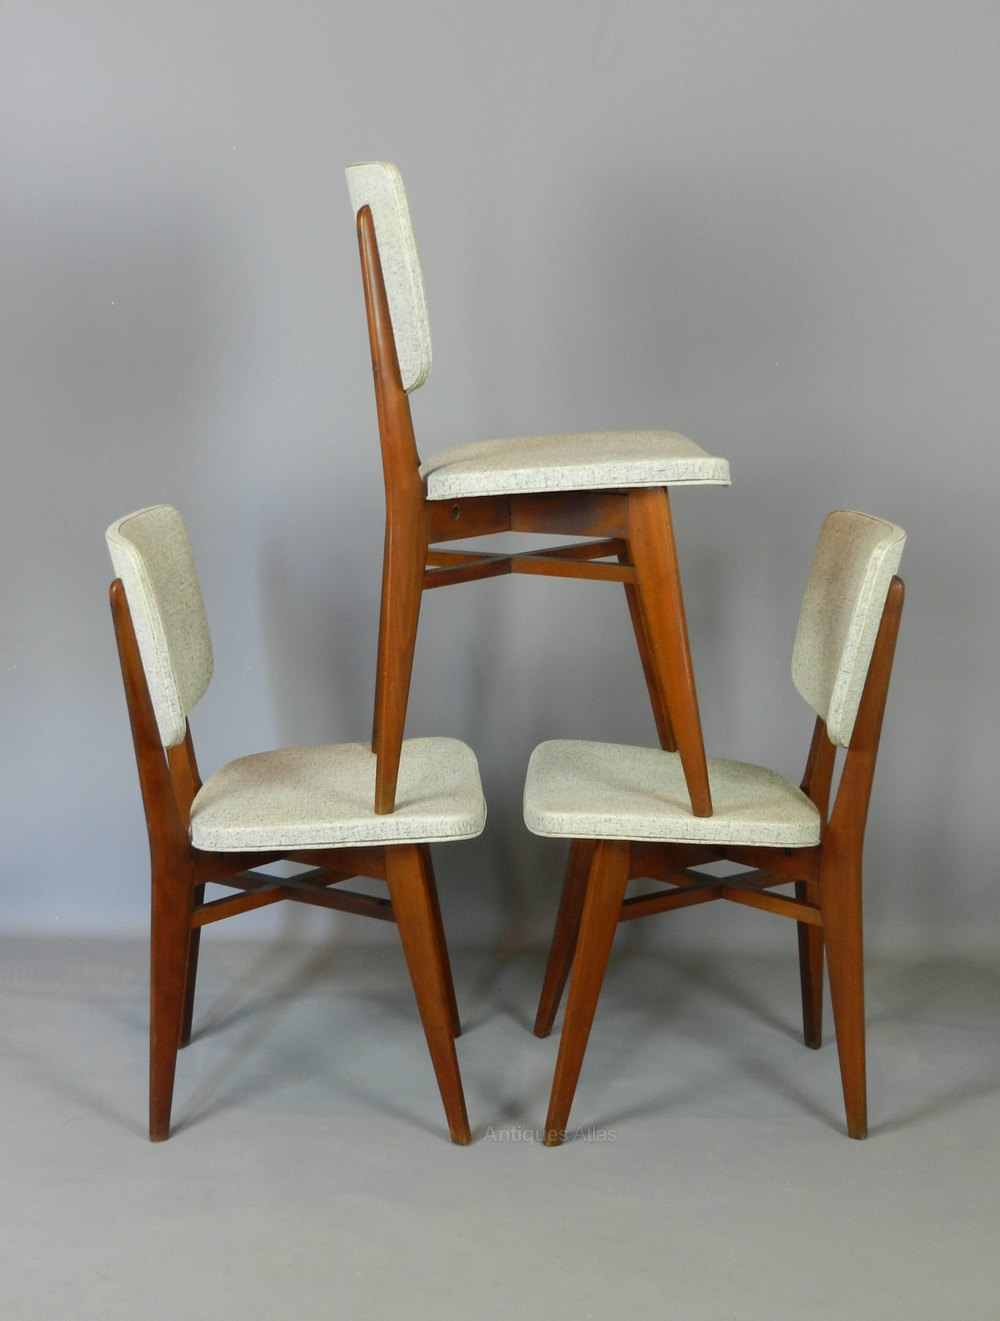 Antiques atlas classic mid century set of 4 french for Classic mid century chairs